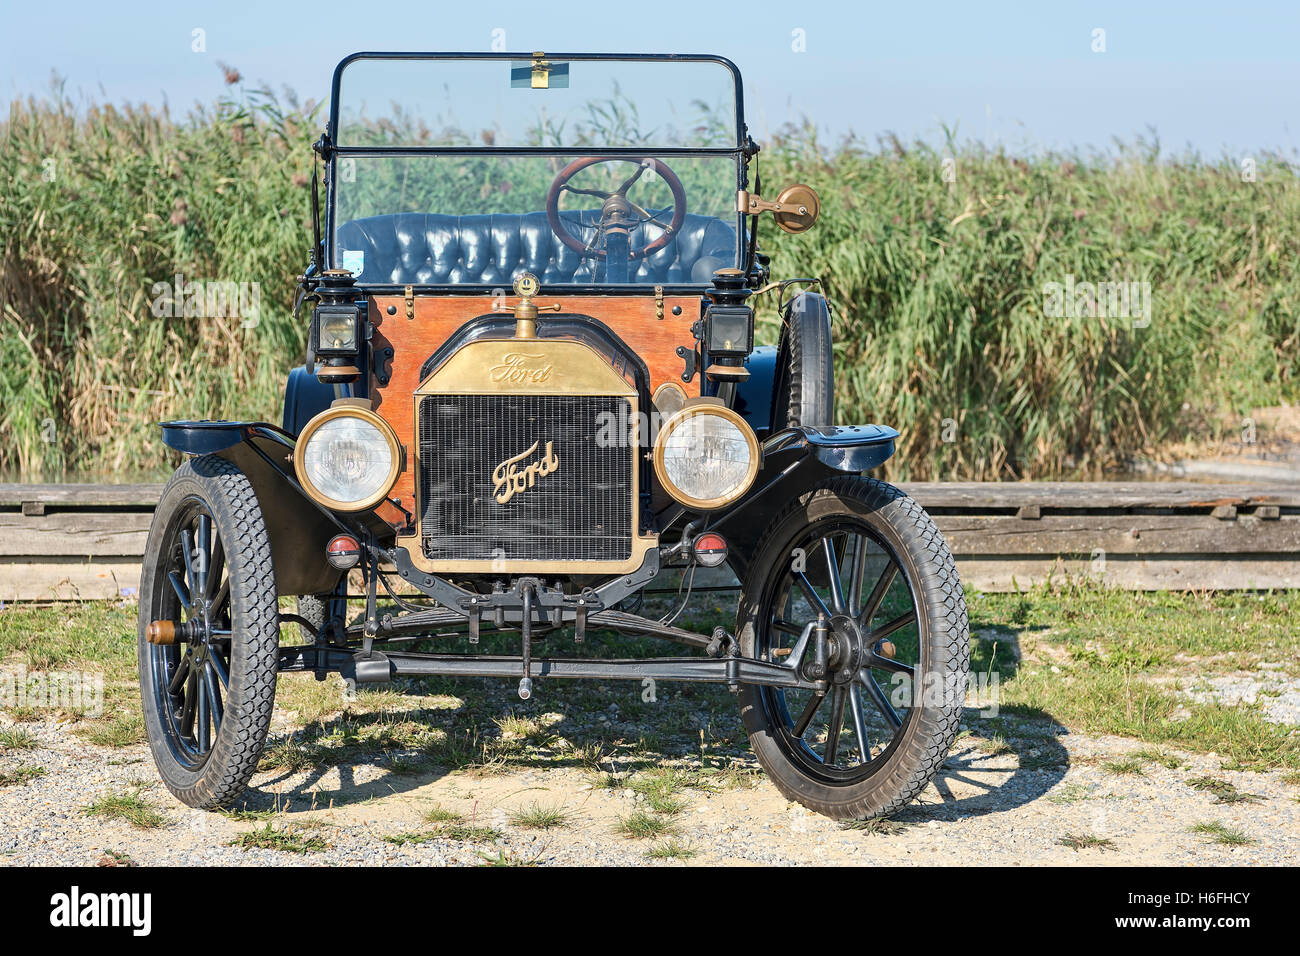 Oldtimer Ford T Runabout, built in 1913, 4 cylinders, displacement 2700 cc, 2 forward gears, semi-automatic, 20 - Stock Image